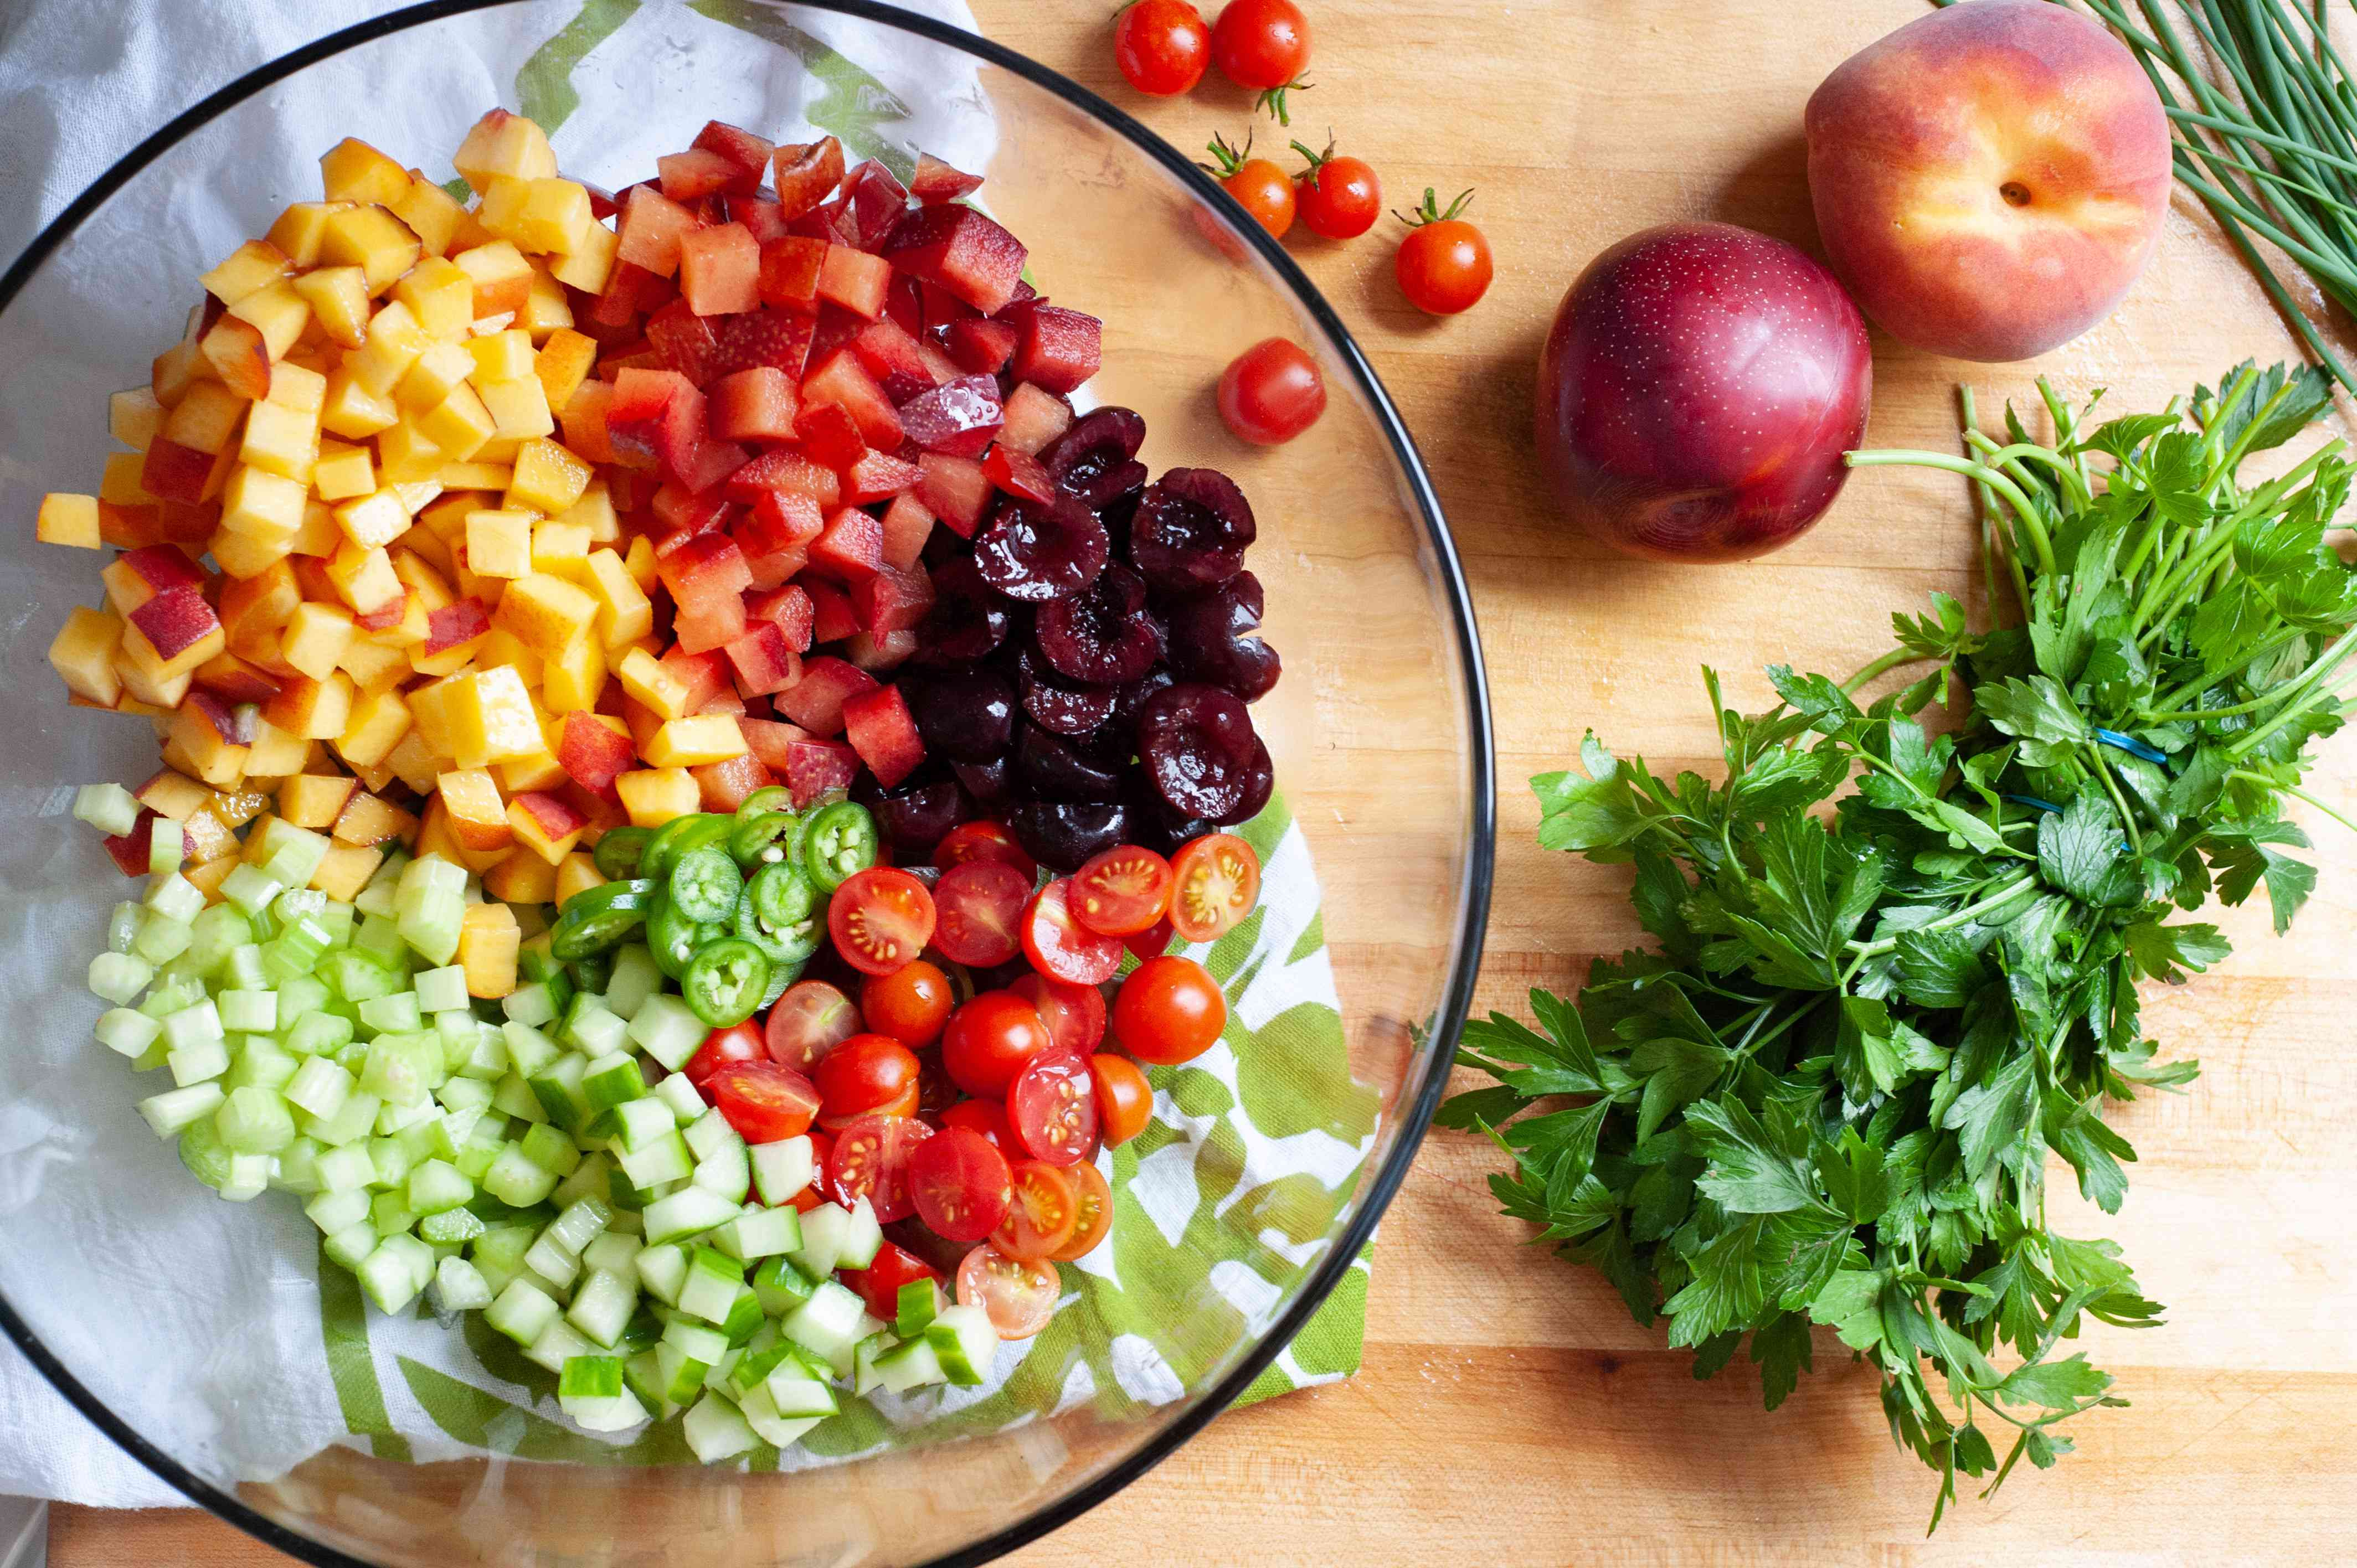 Diced ingredients in a bowl to make an herby fruit salad.